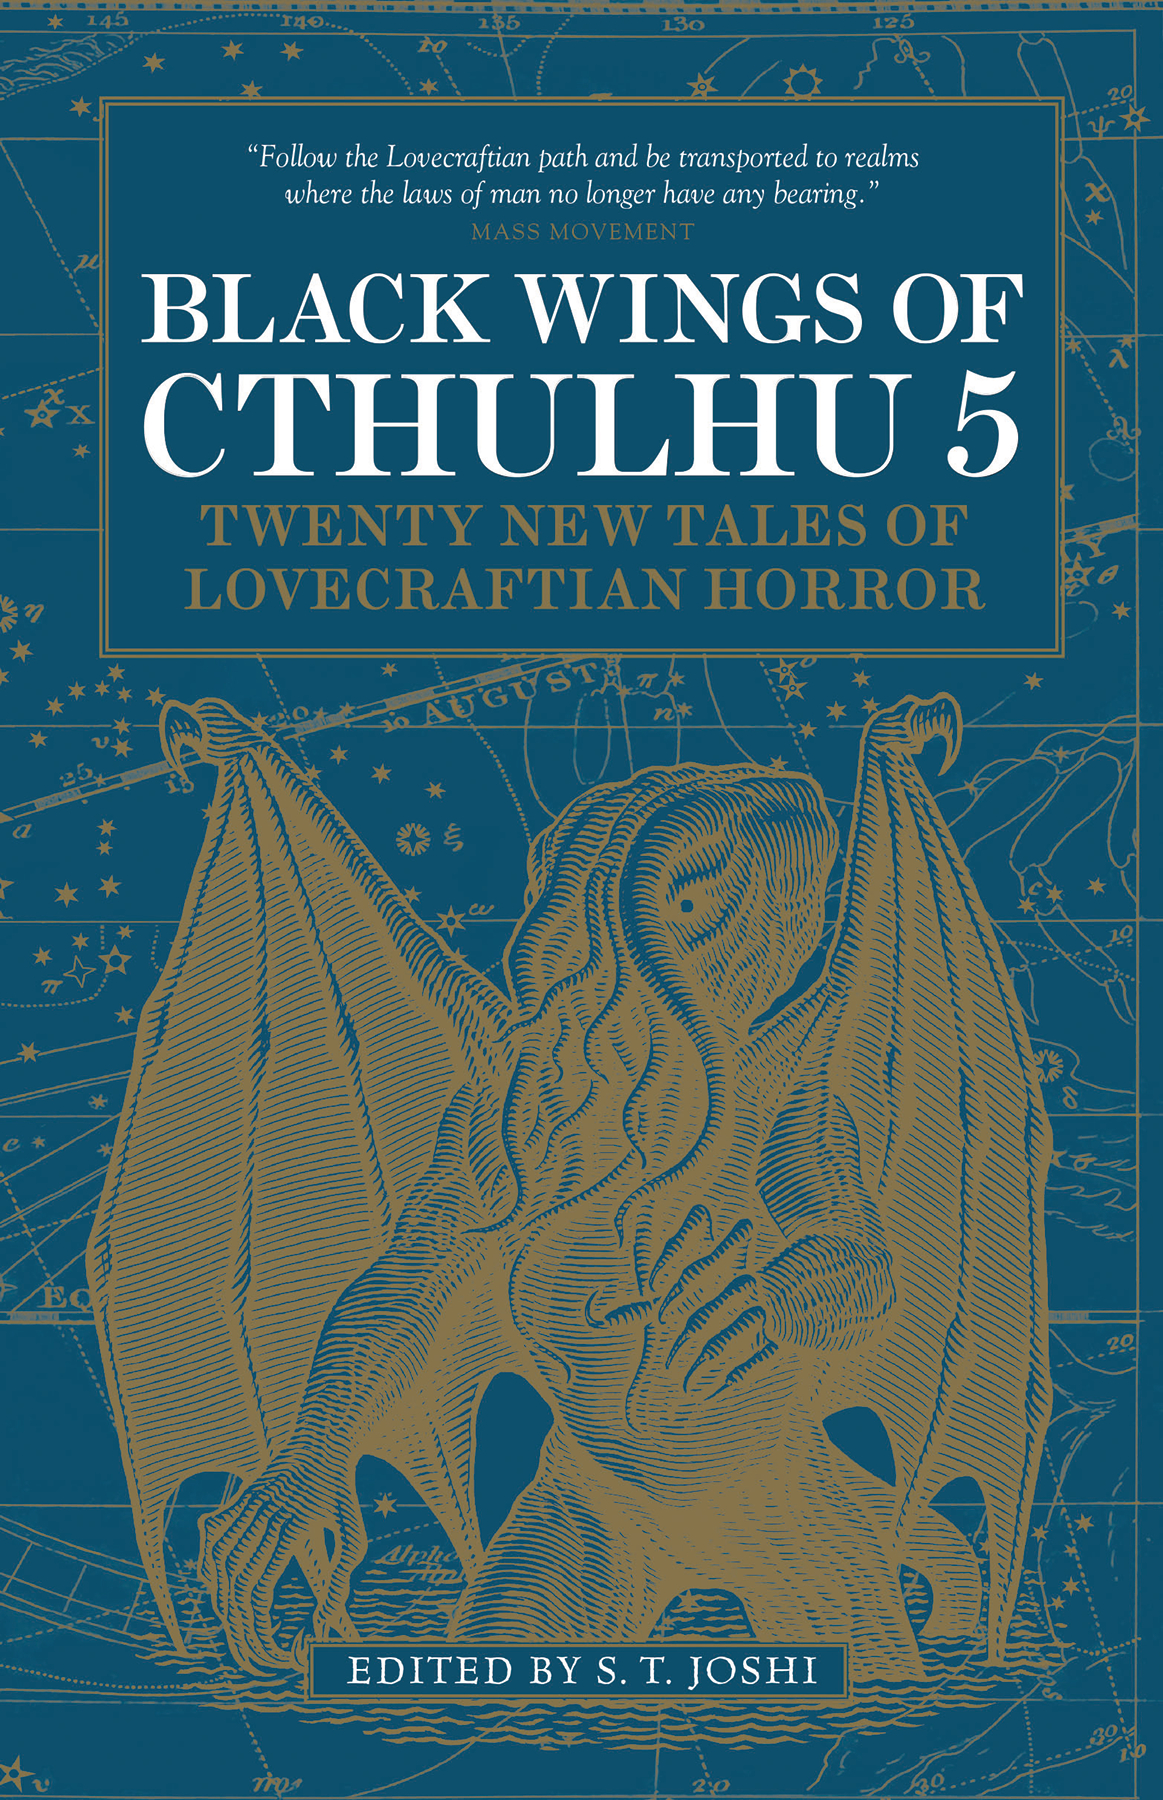 BLACK WINGS OF CTHULHU MMPB VOL 05